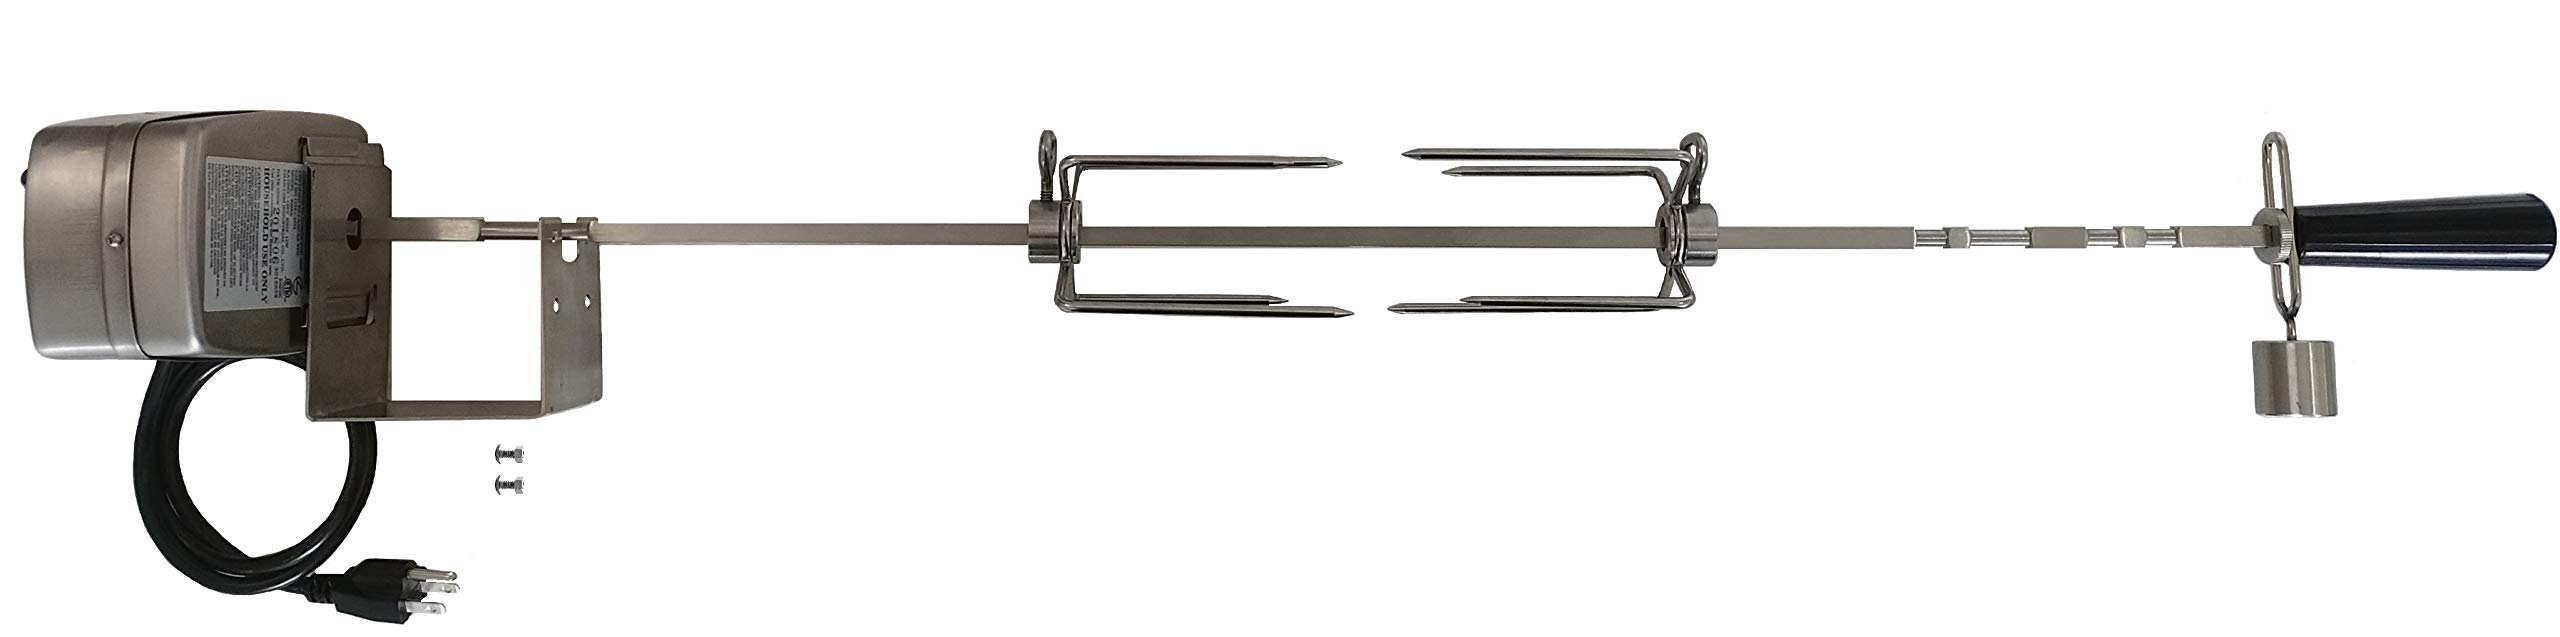 OneGrill Weber Fit Stainless Steel Complete Grill Rotisserie Kit W/ 13 Watt Electric Motor; 3/8 Inch Square Spit Rod (Fits: 300 Series 3 Burner Weber Genesis/Genesis II/Spirit/Spirit II) by OneGrill BBQ Products